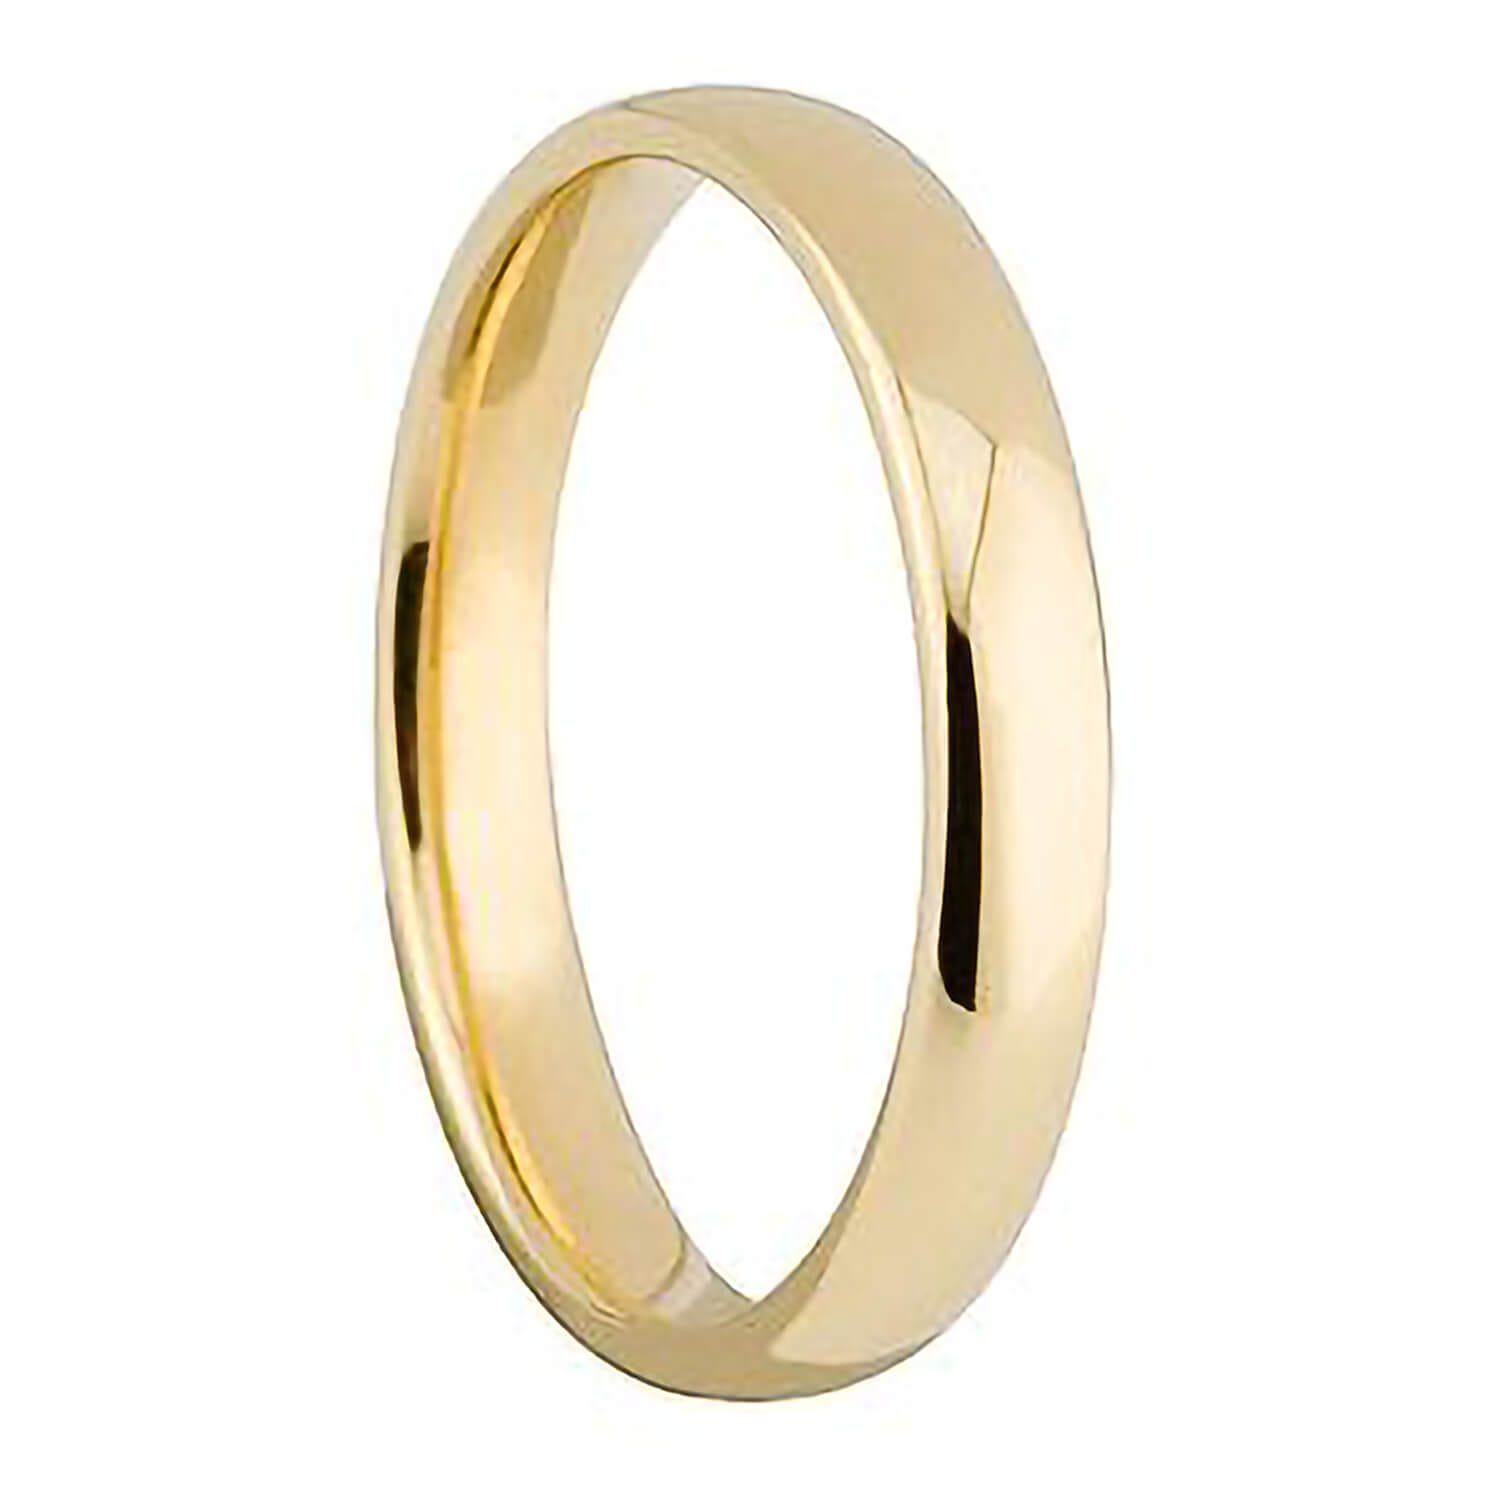 Ladies' 18ct gold 2.5mm superior court wedding ring